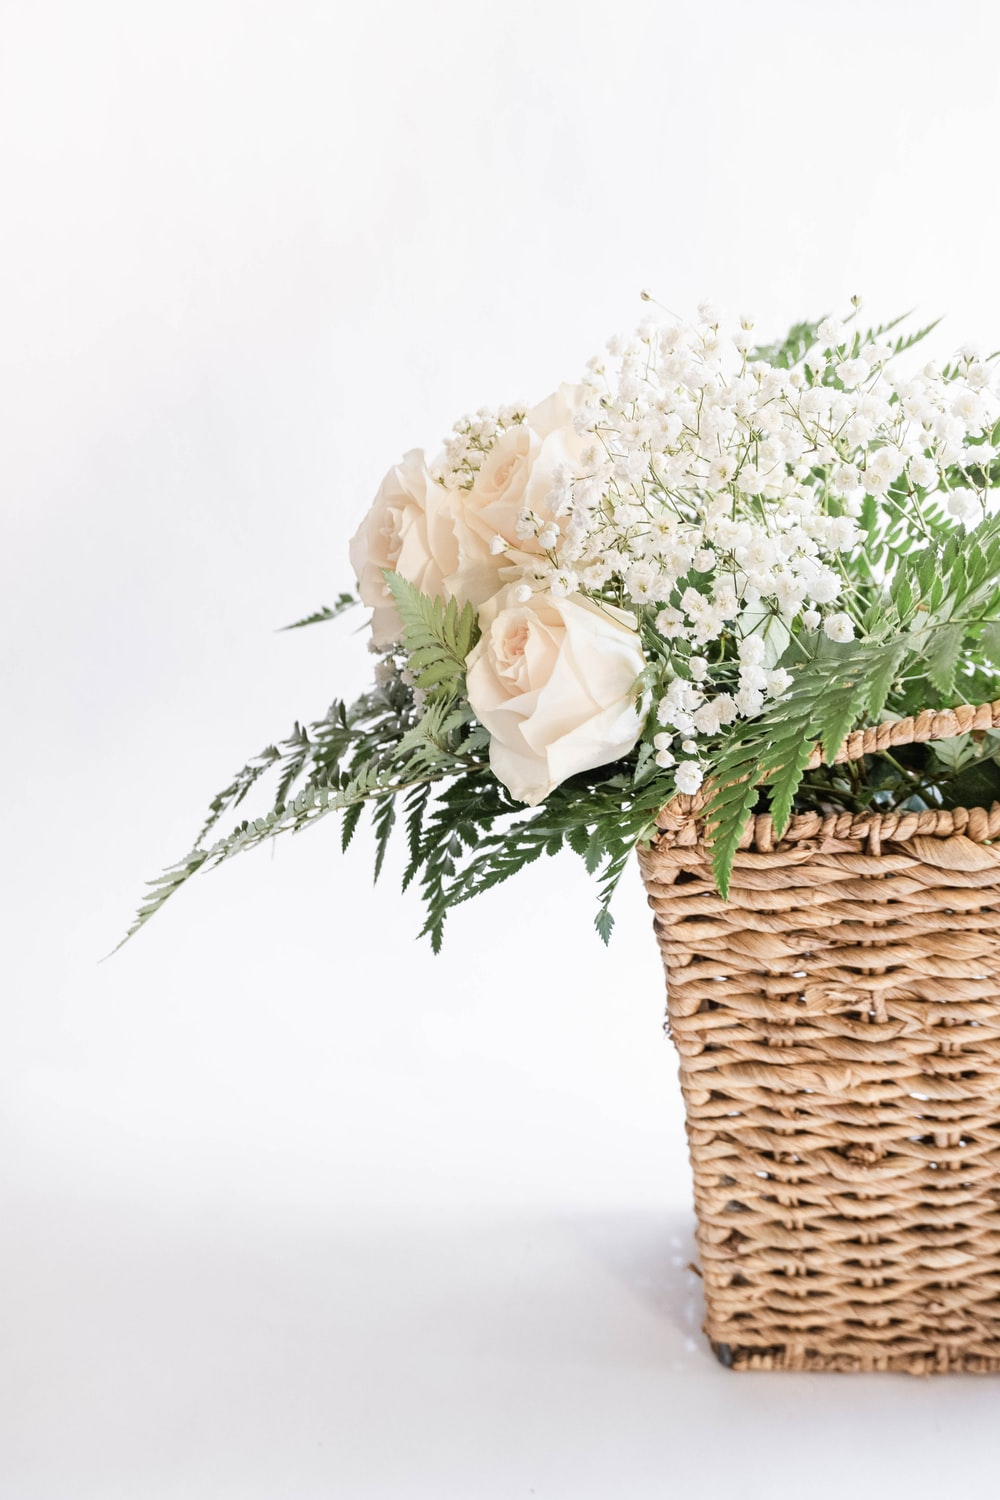 white flowers on brown woven basket